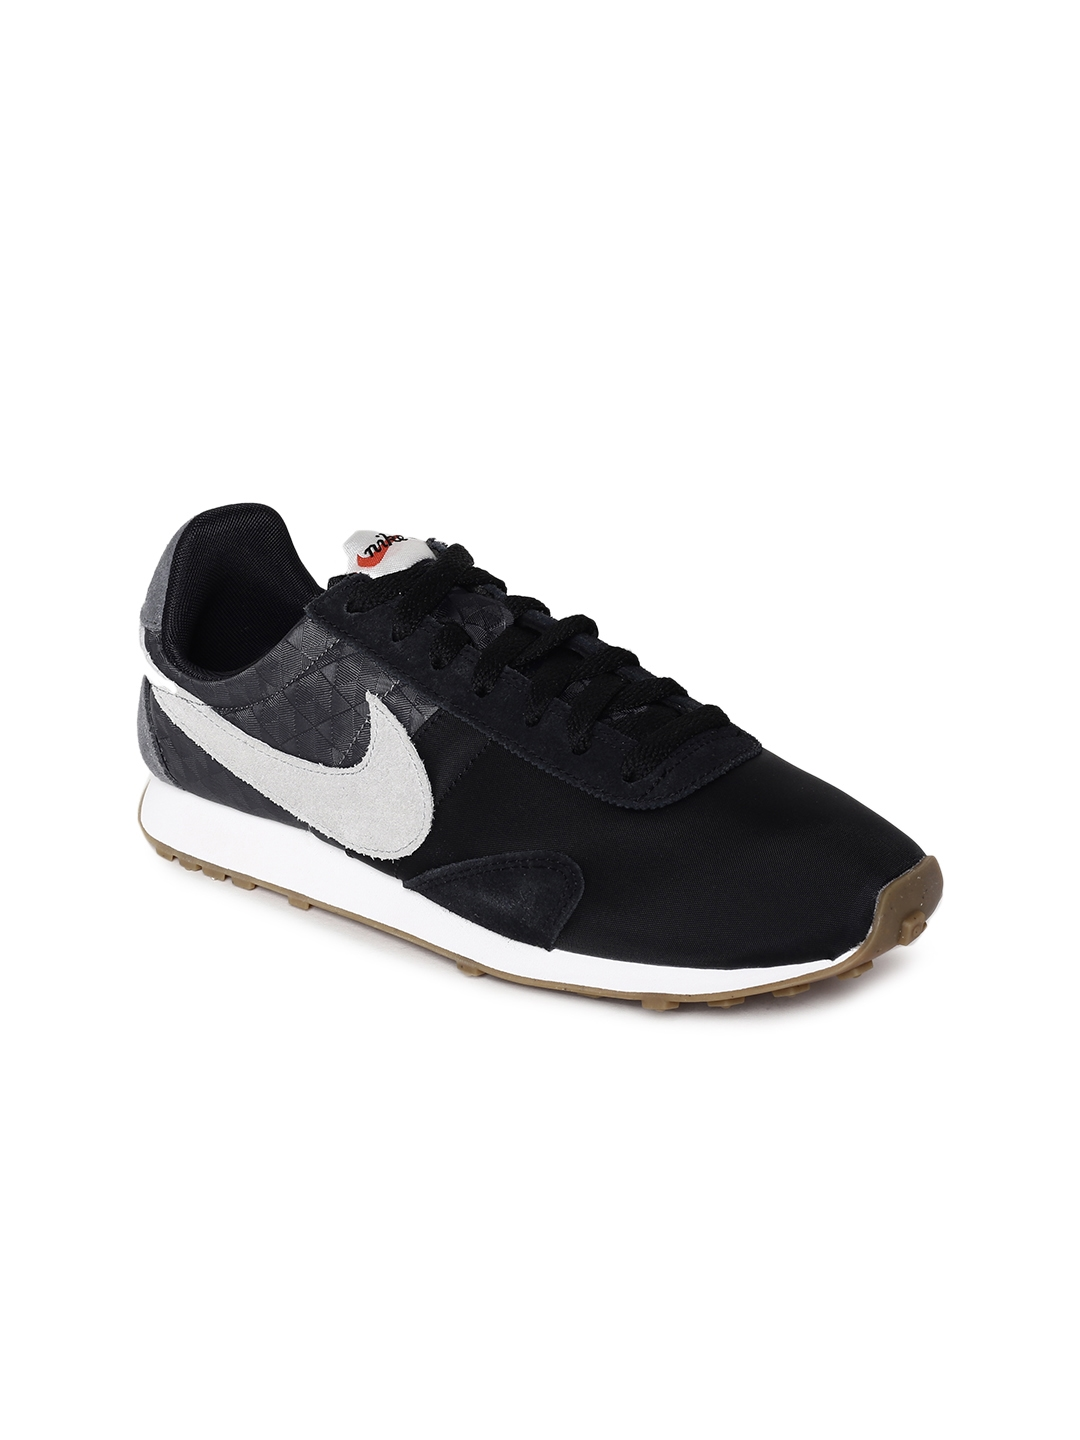 e6f2b6d0a77e Buy Nike Women Black Pre Montreal Racer Vintage Leather Sneakers ...